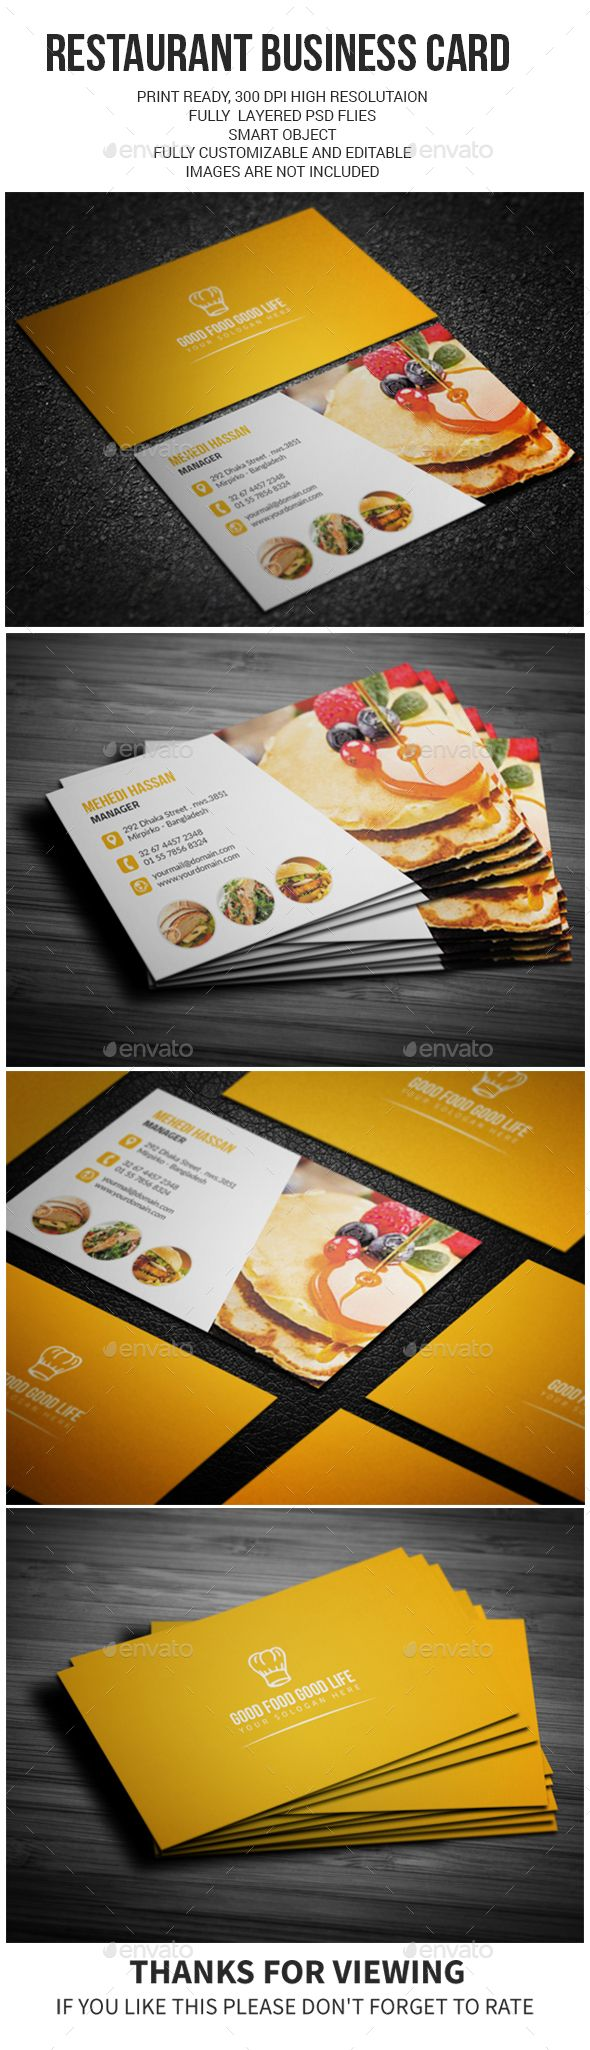 Restaurant business card pinterest card templates business restaurant business card template psd design visitcard download httpgraphicriveritemrestaurant business card13091673refksioks reheart Gallery